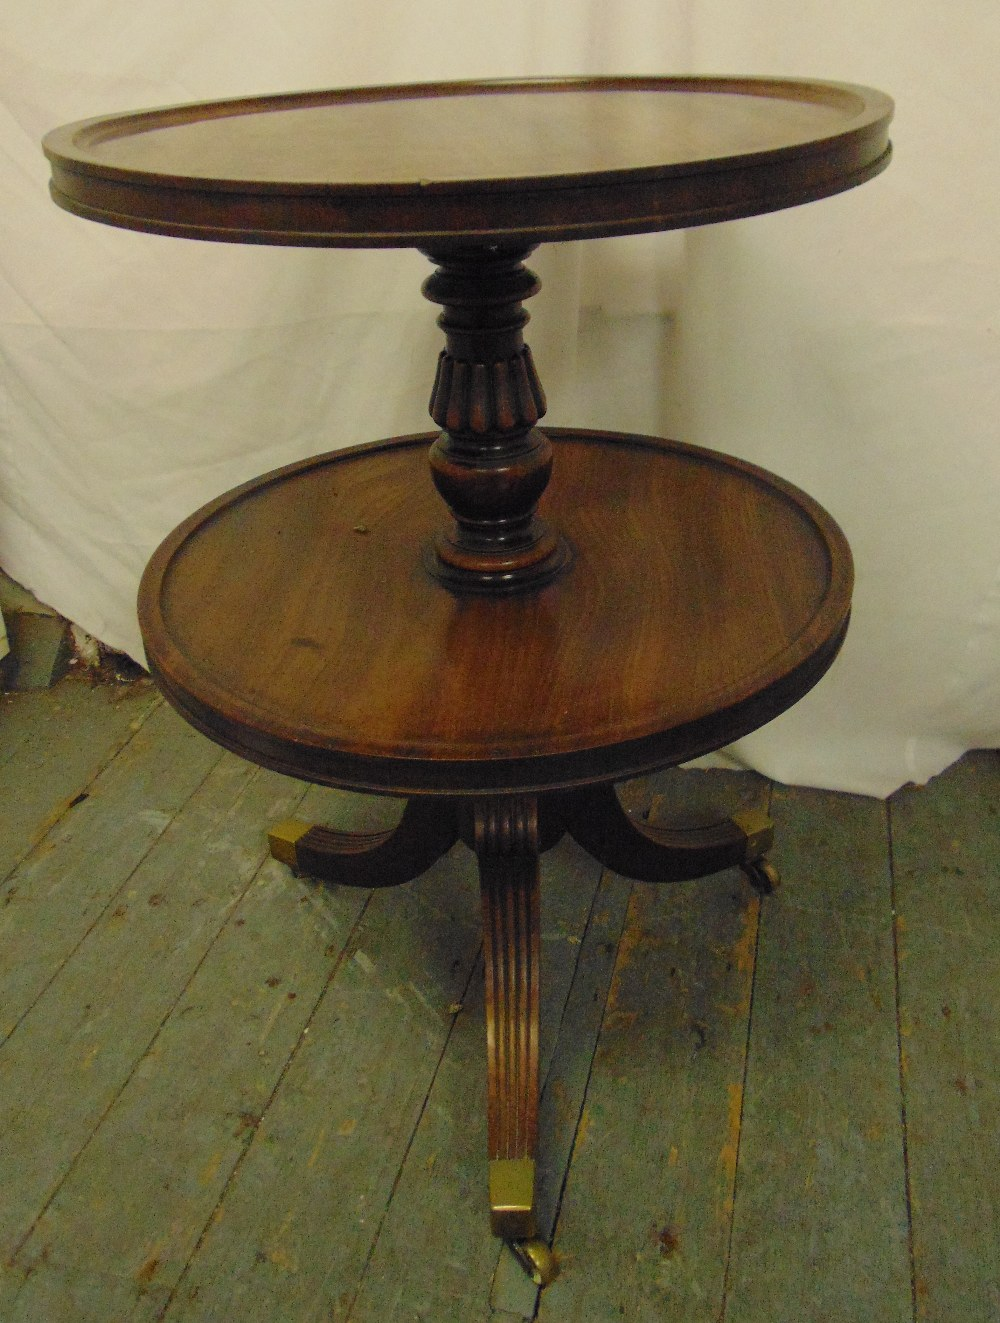 Lot 28 - A 19th century circular mahogany two tier dumb waiter trolley on tripod feet with brass caps and